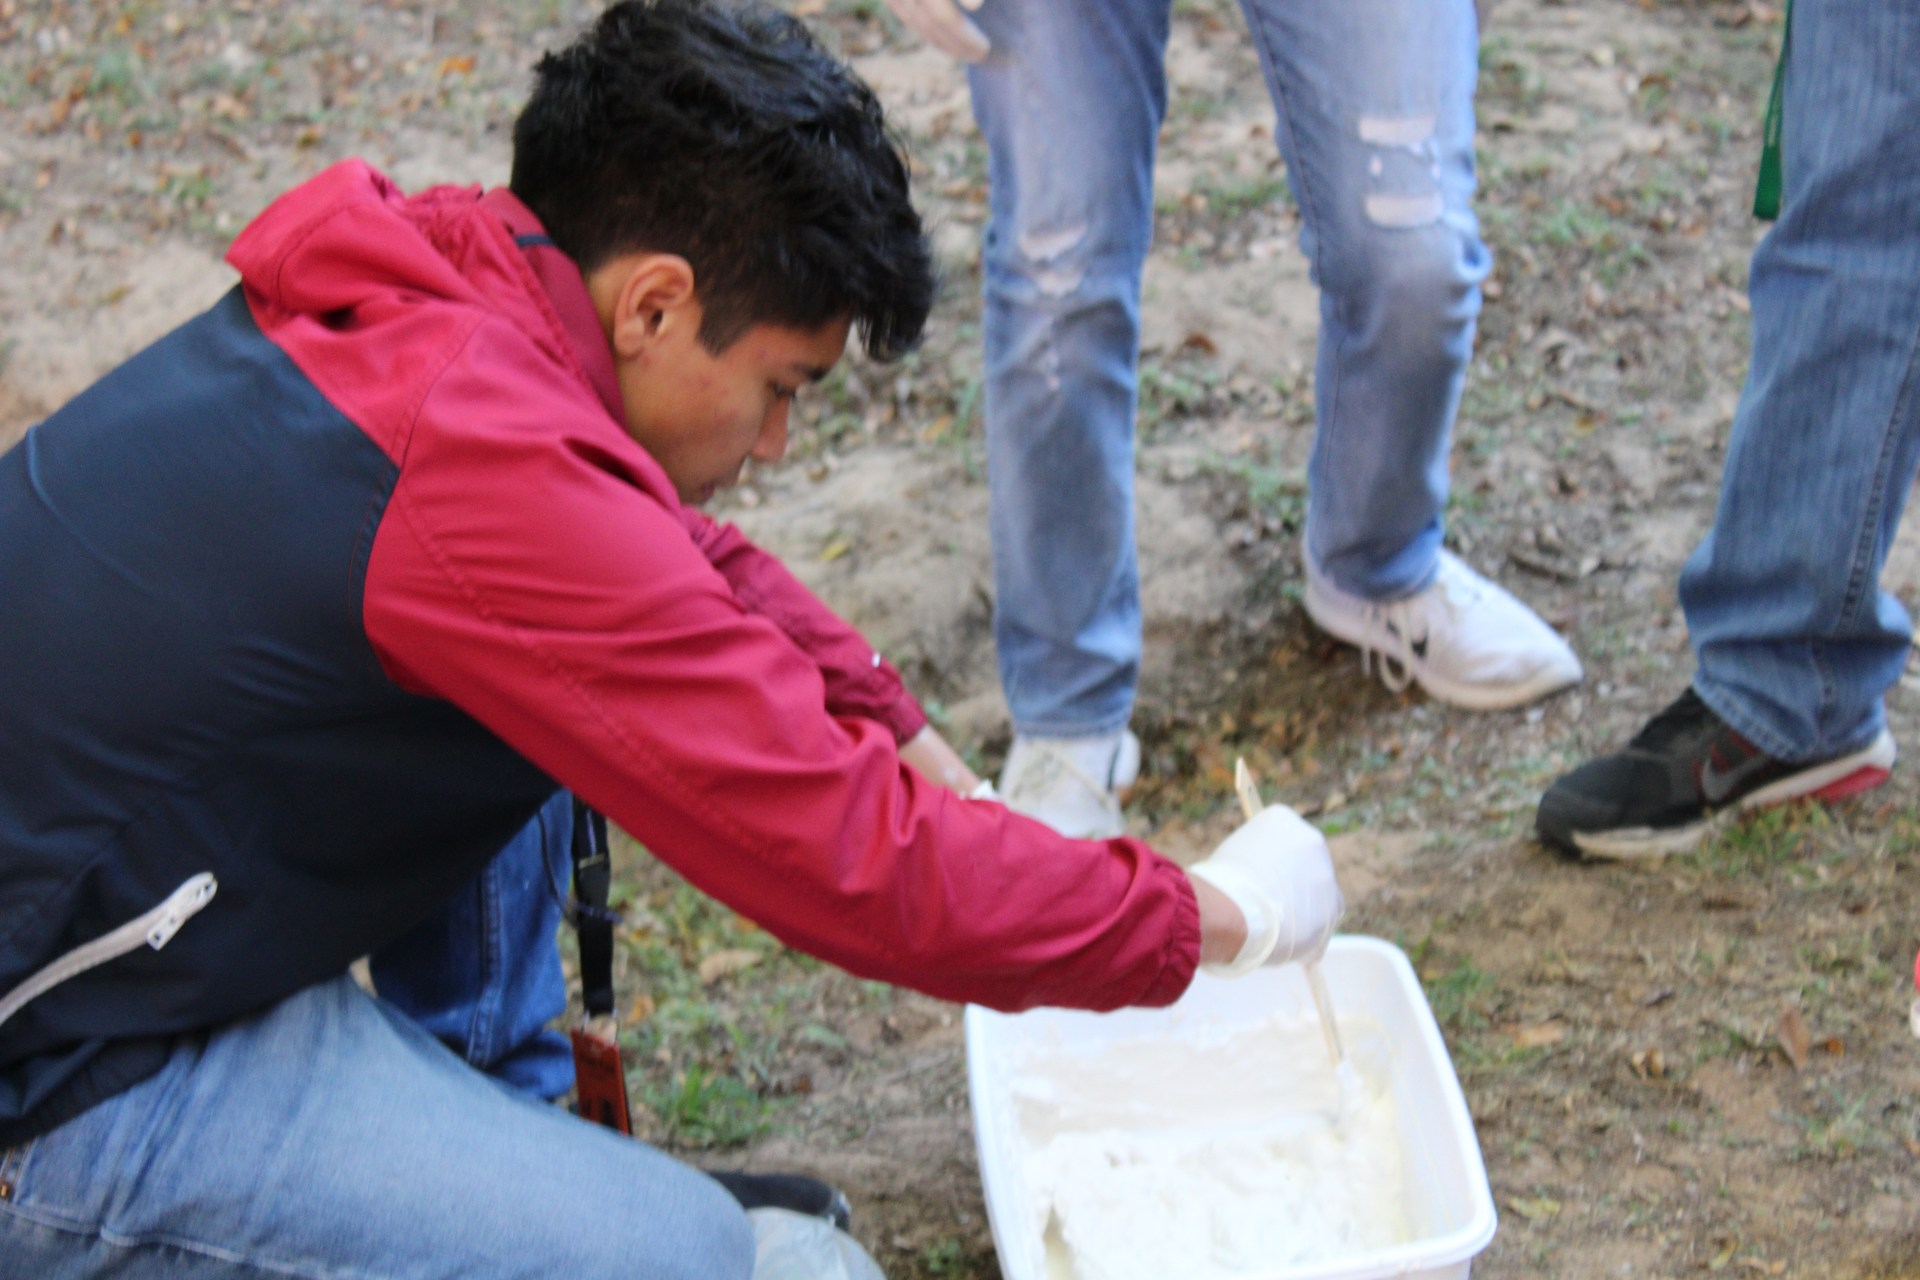 Forensic science students pour foot prints